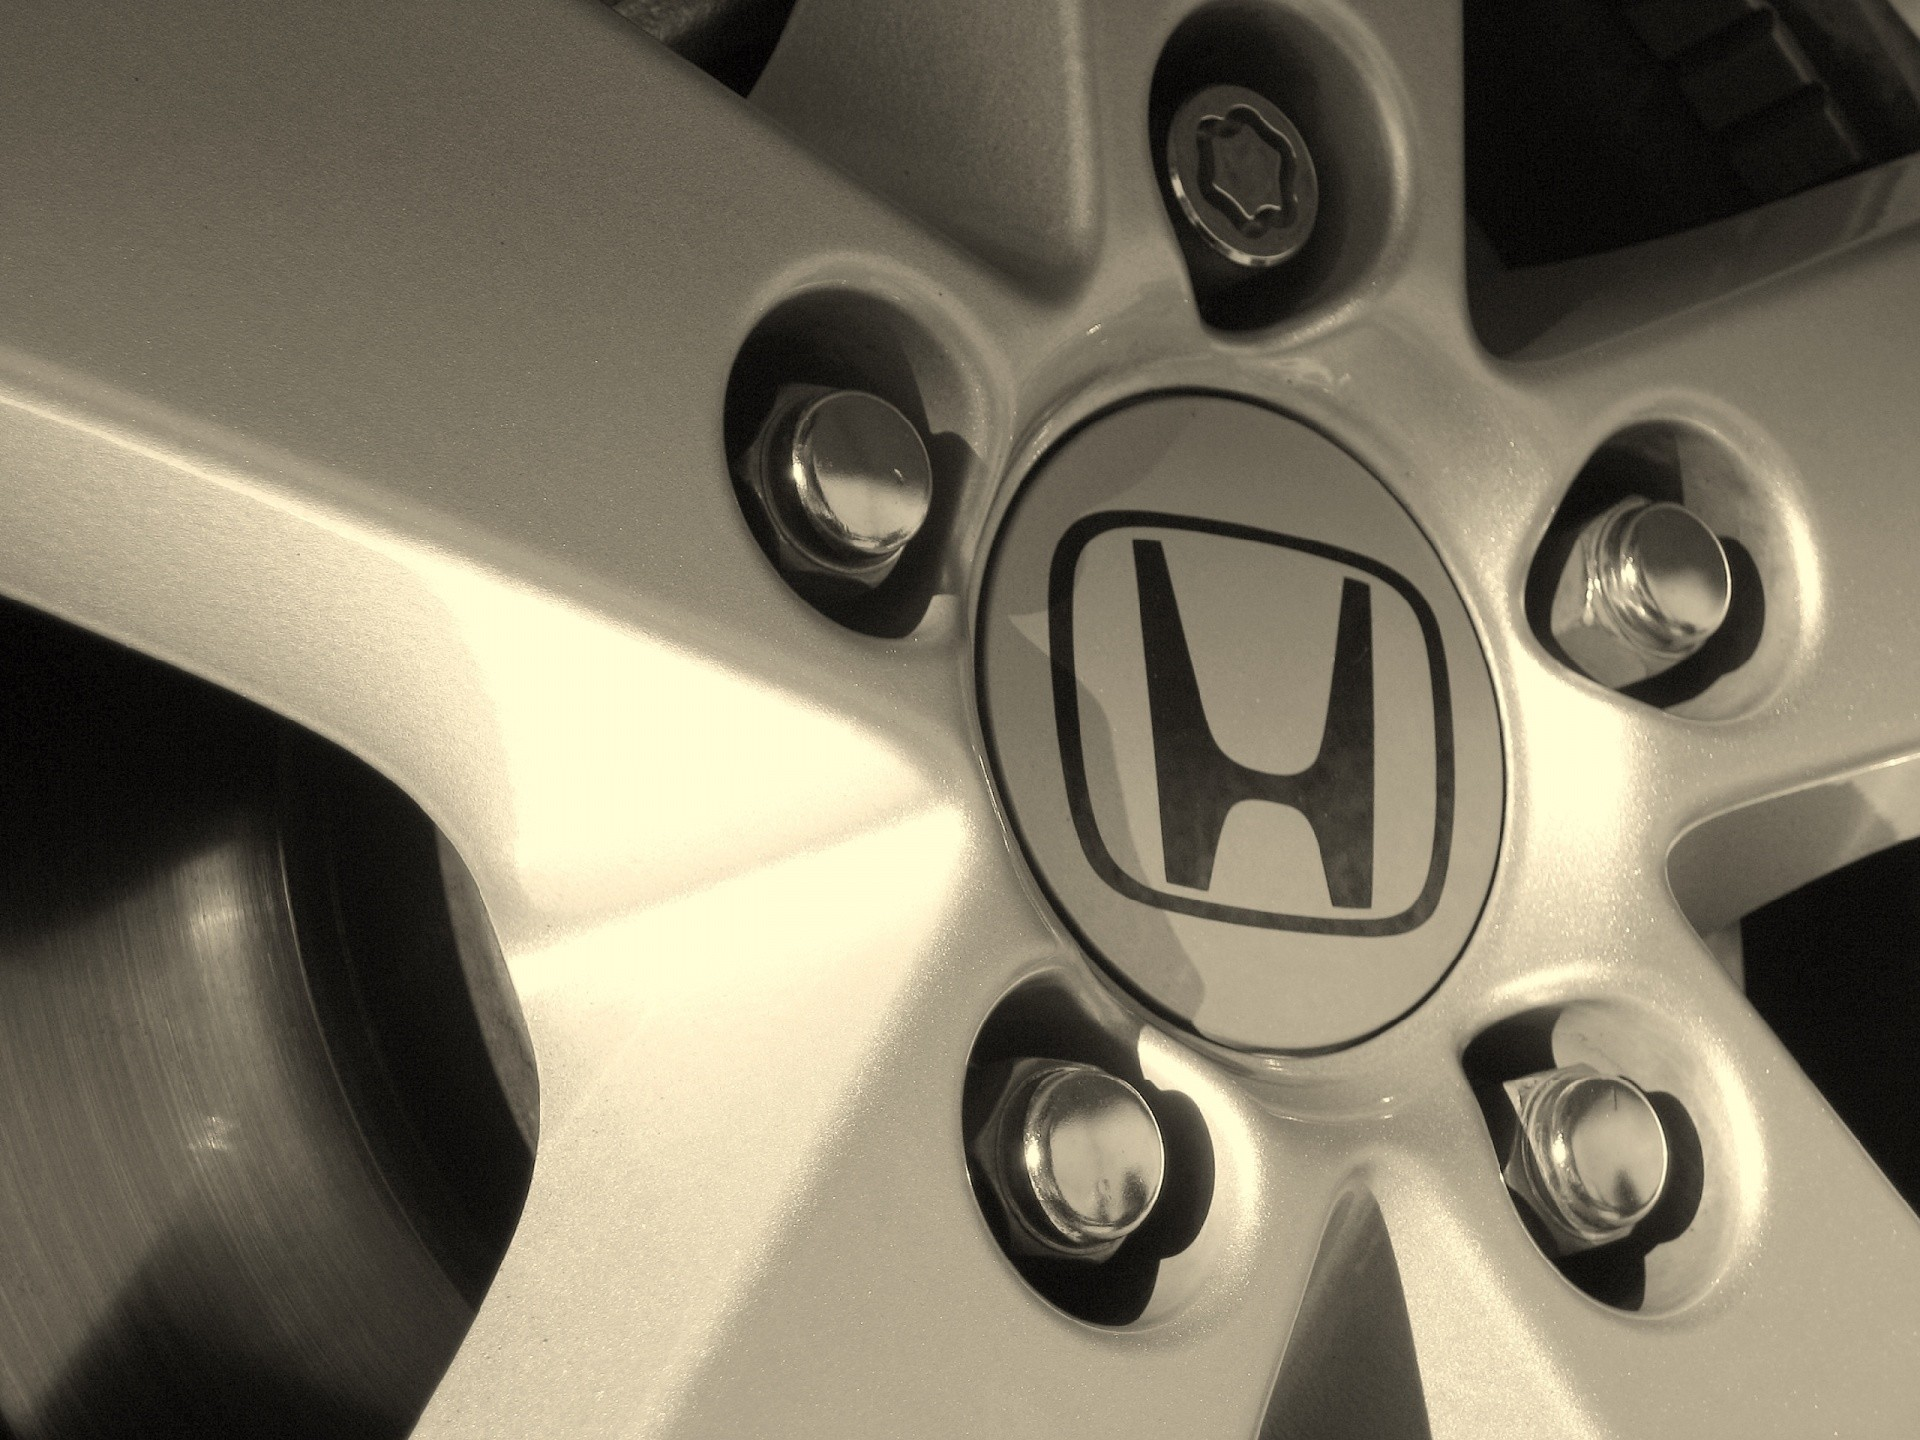 Honda Car Rim Wallpaper 20831